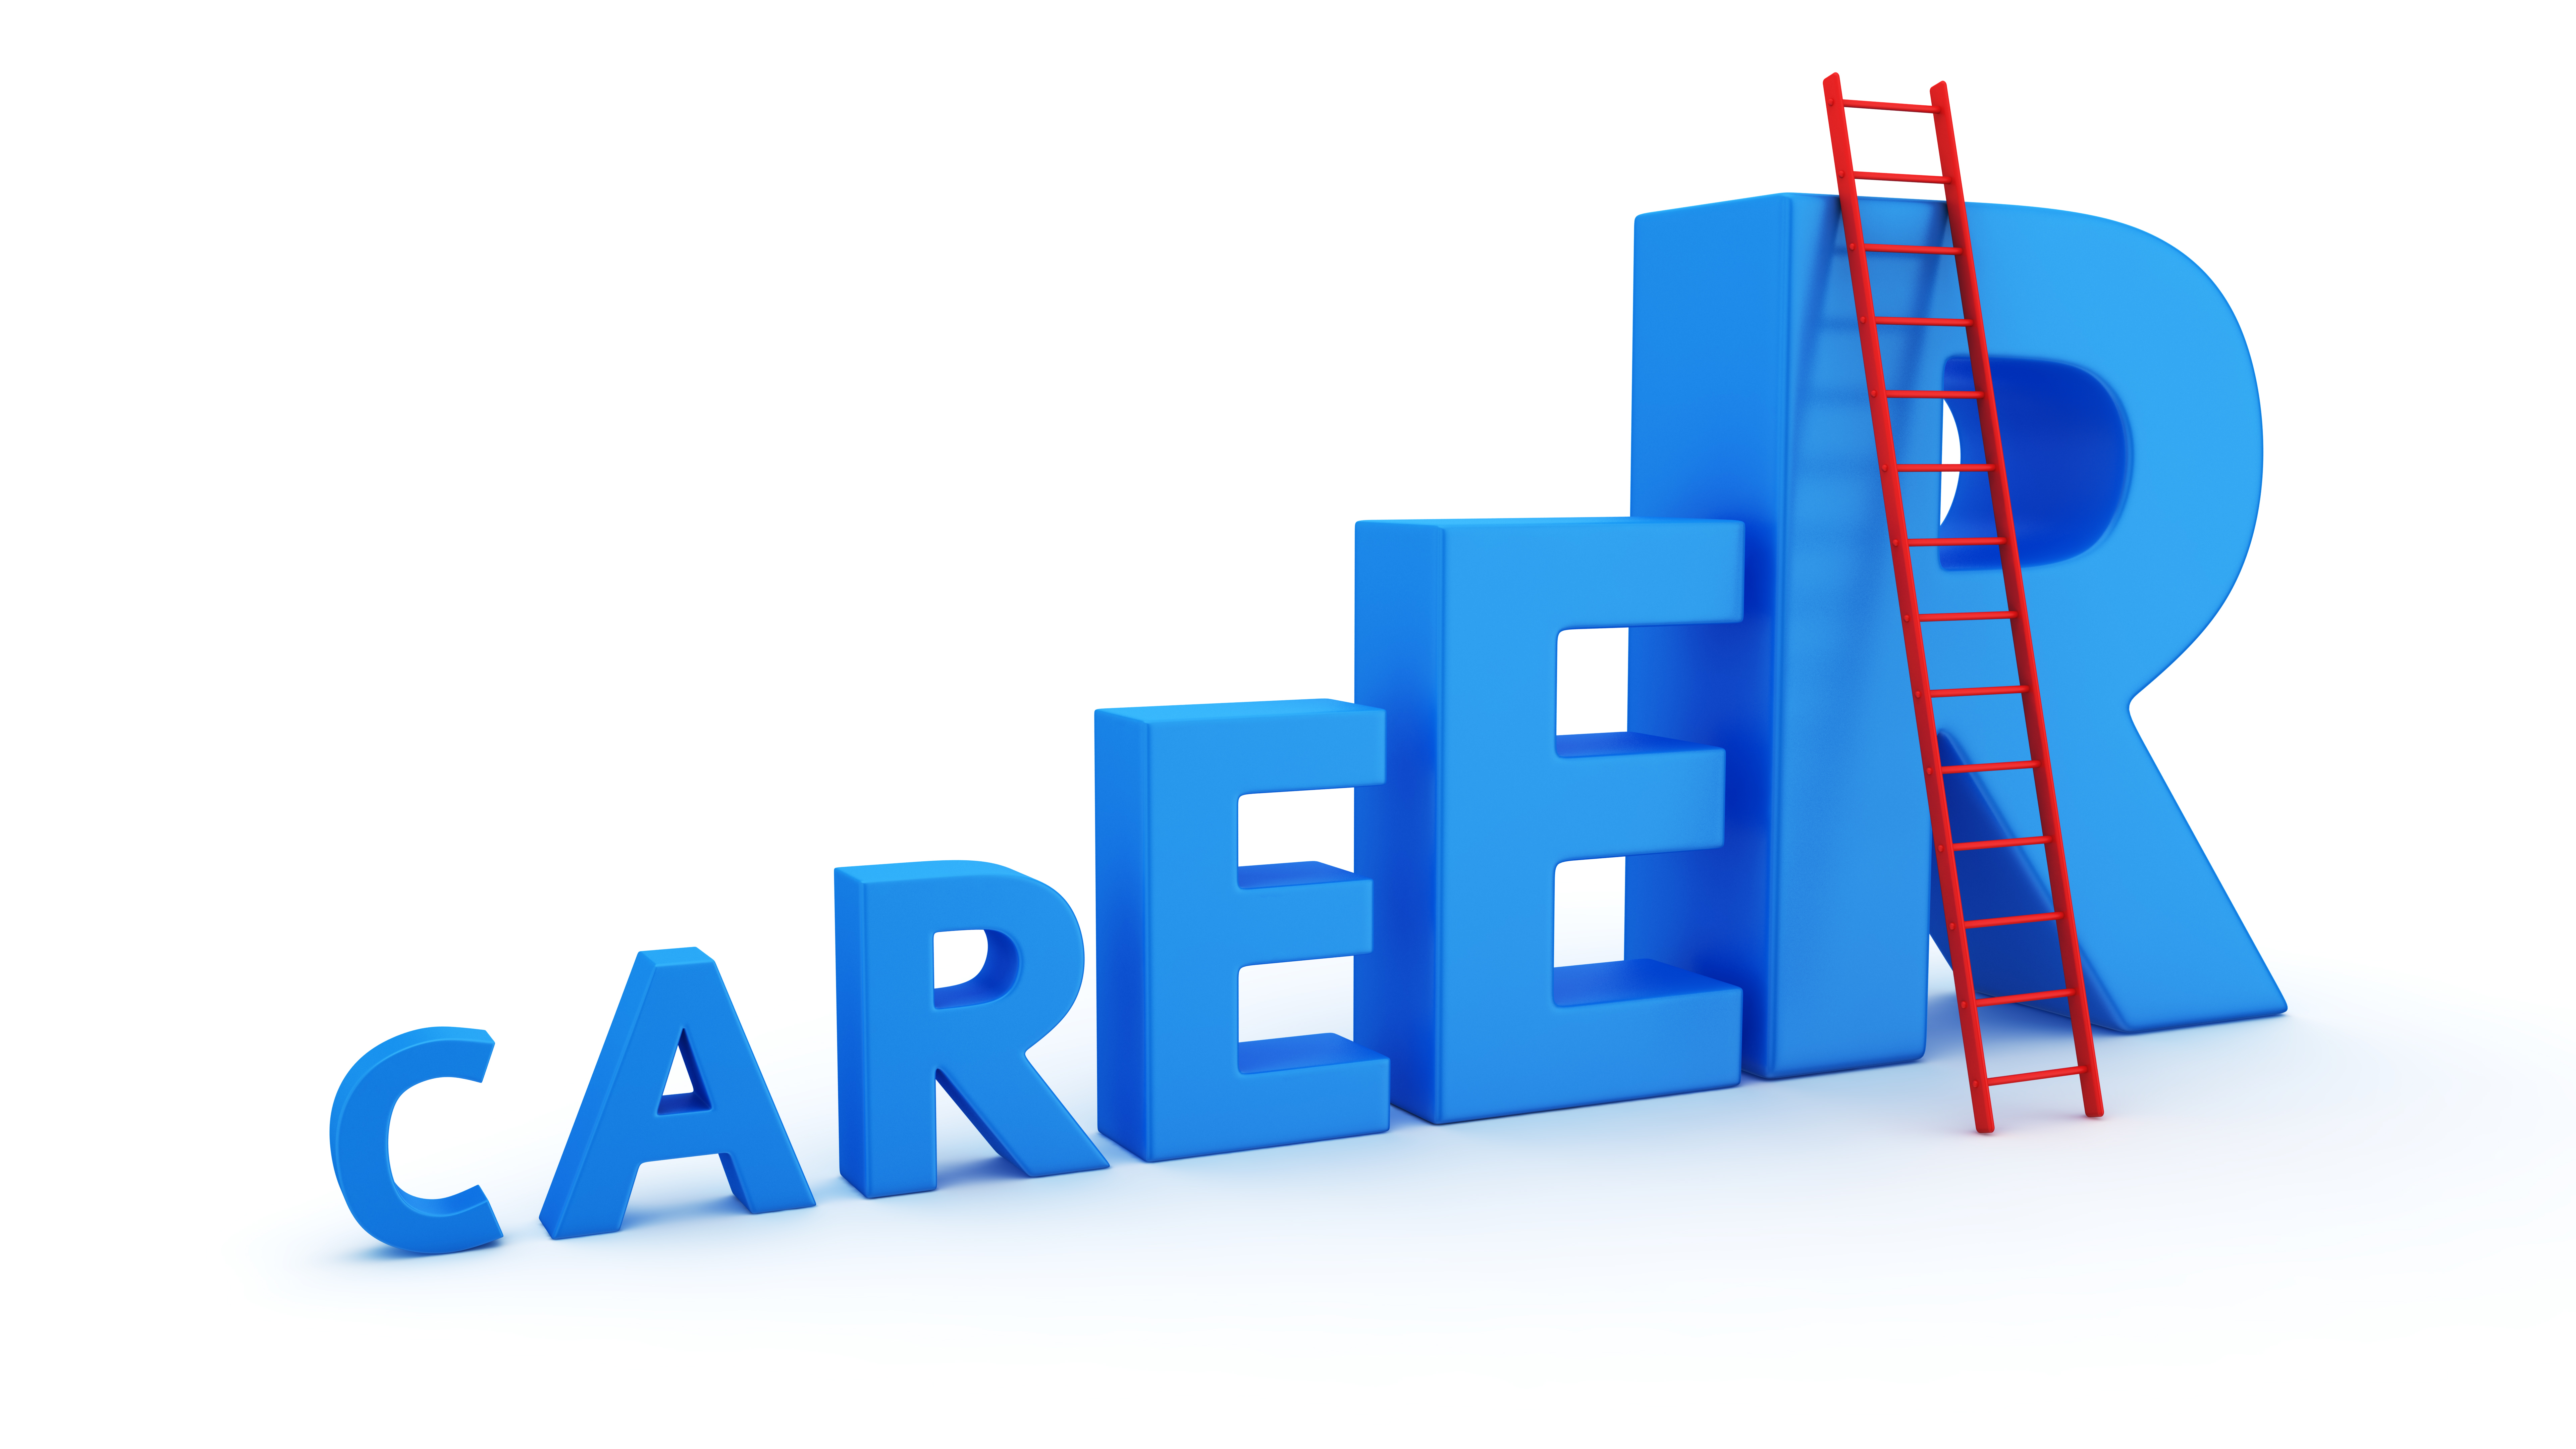 Career clipart career management. Mba versus pmp and